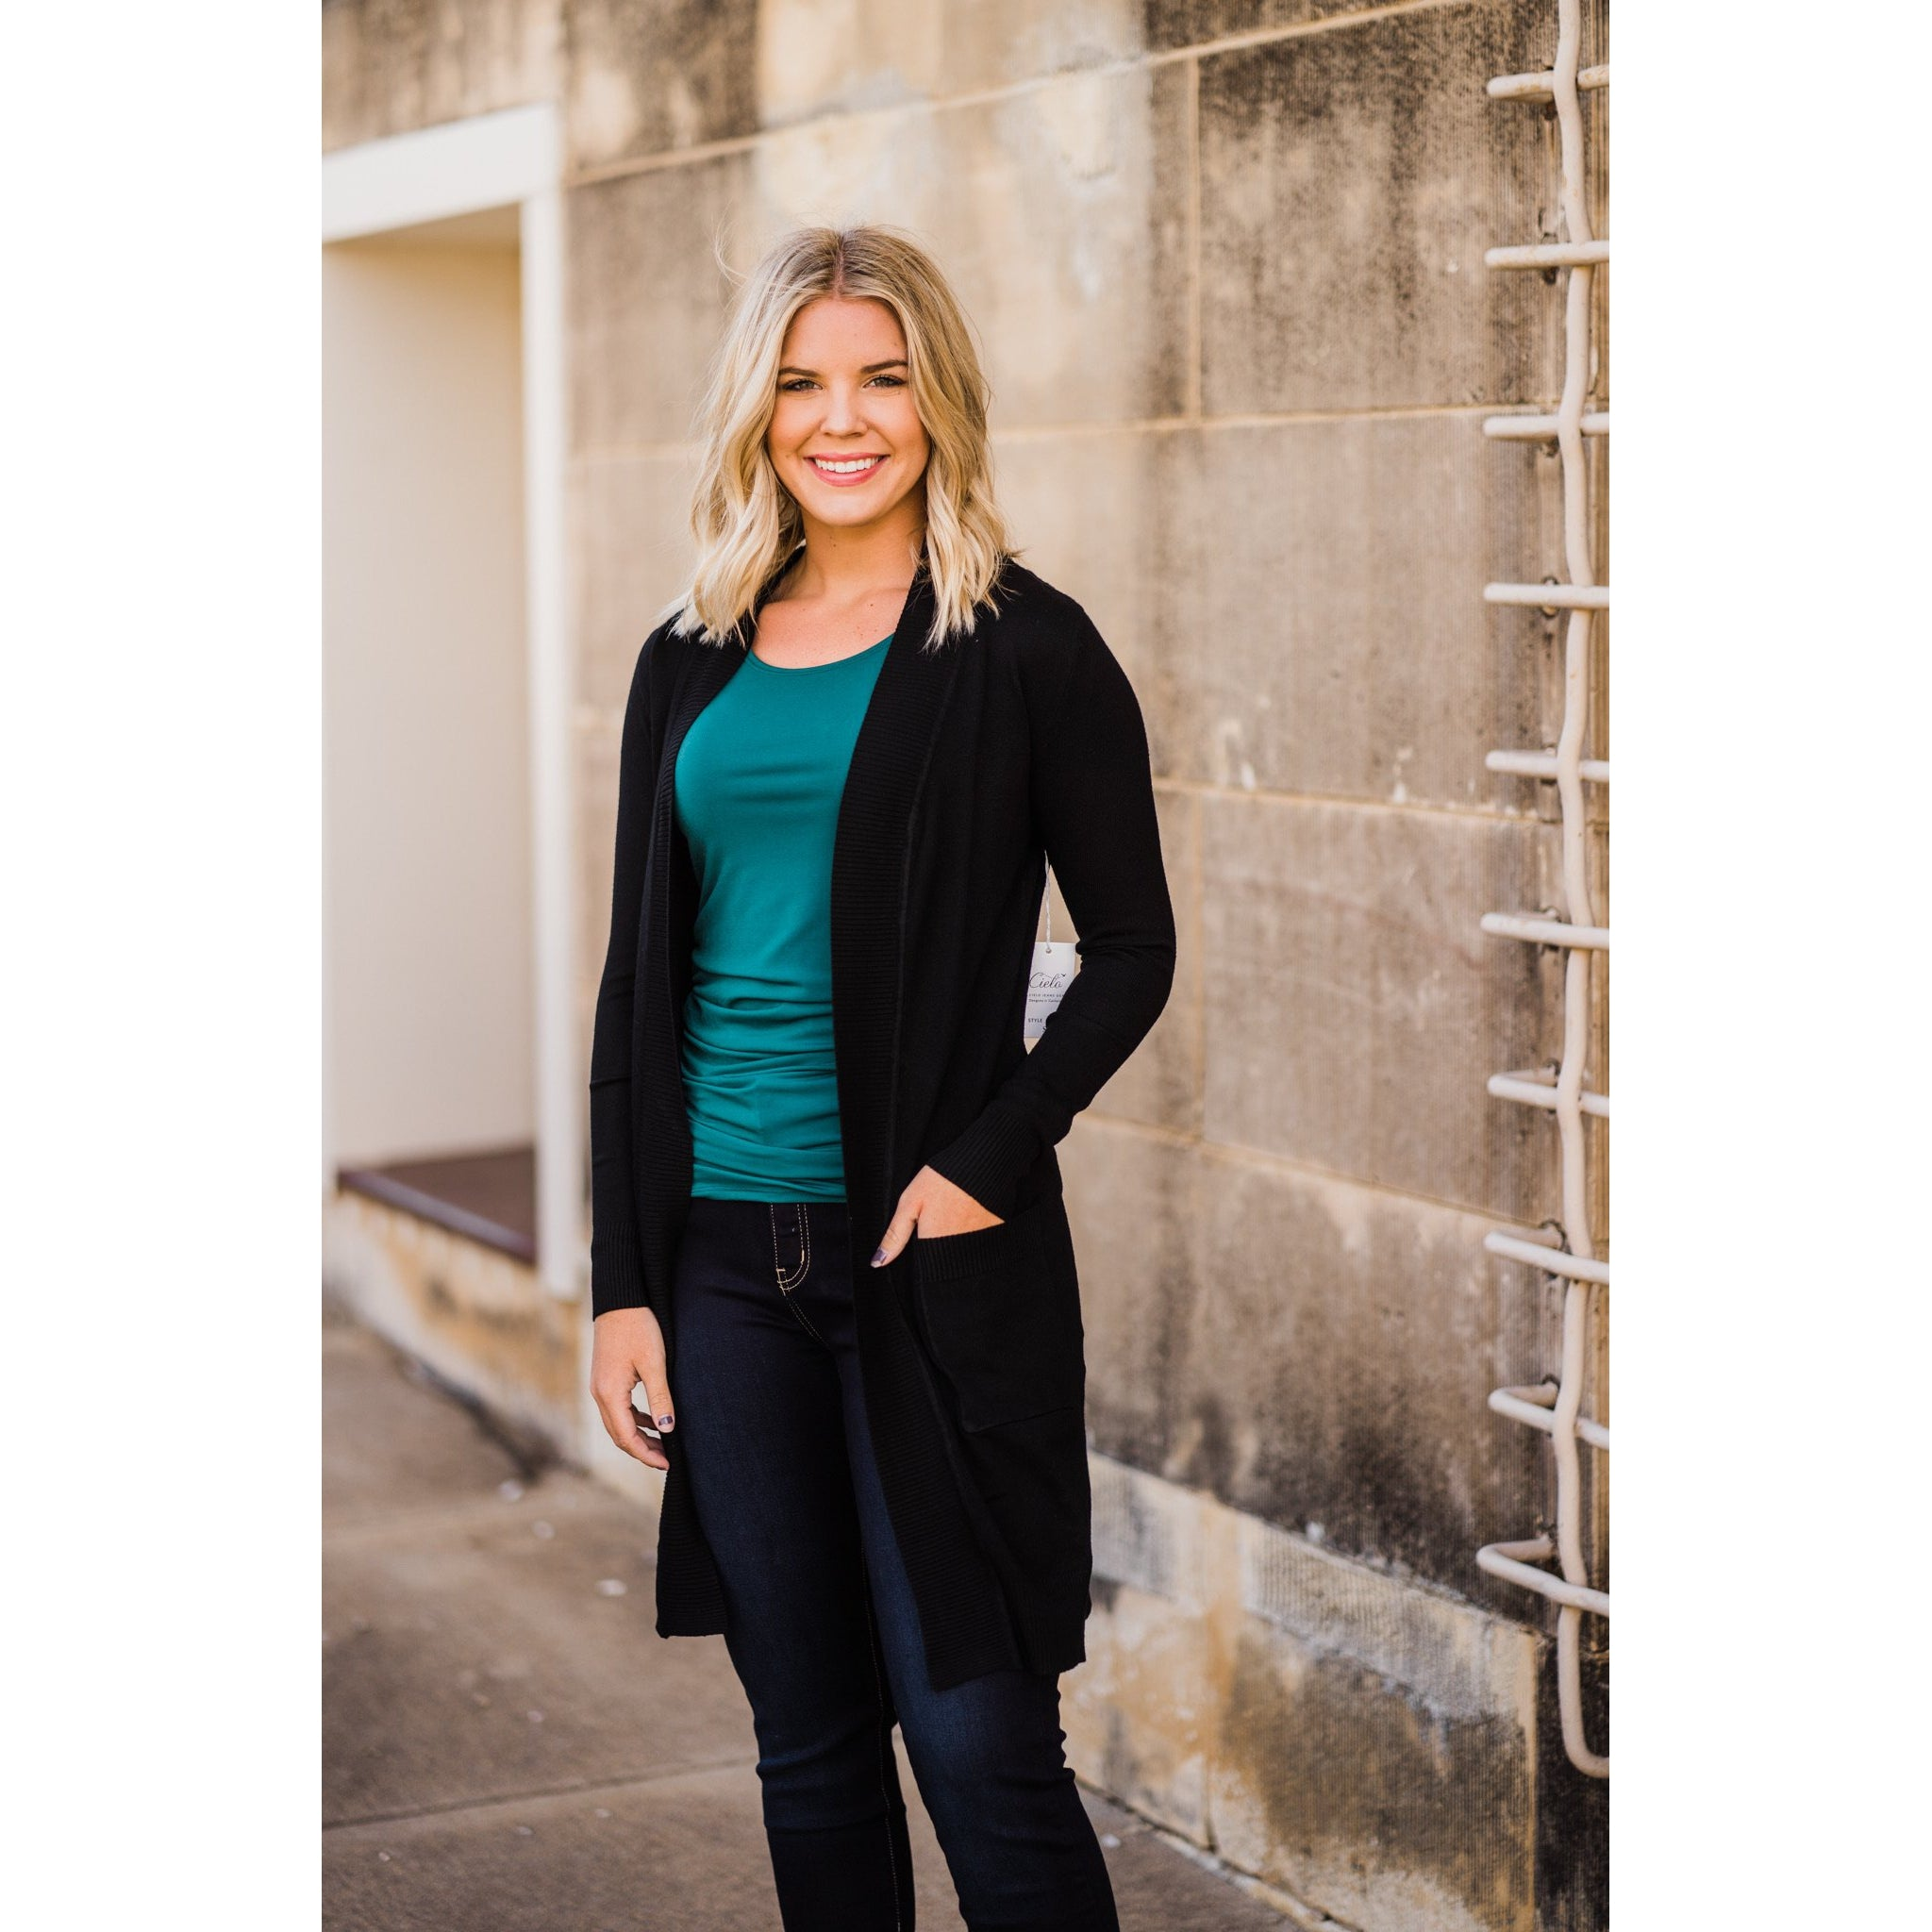 All Things Lovely Cardigan in Black-Four Sisters Boutique